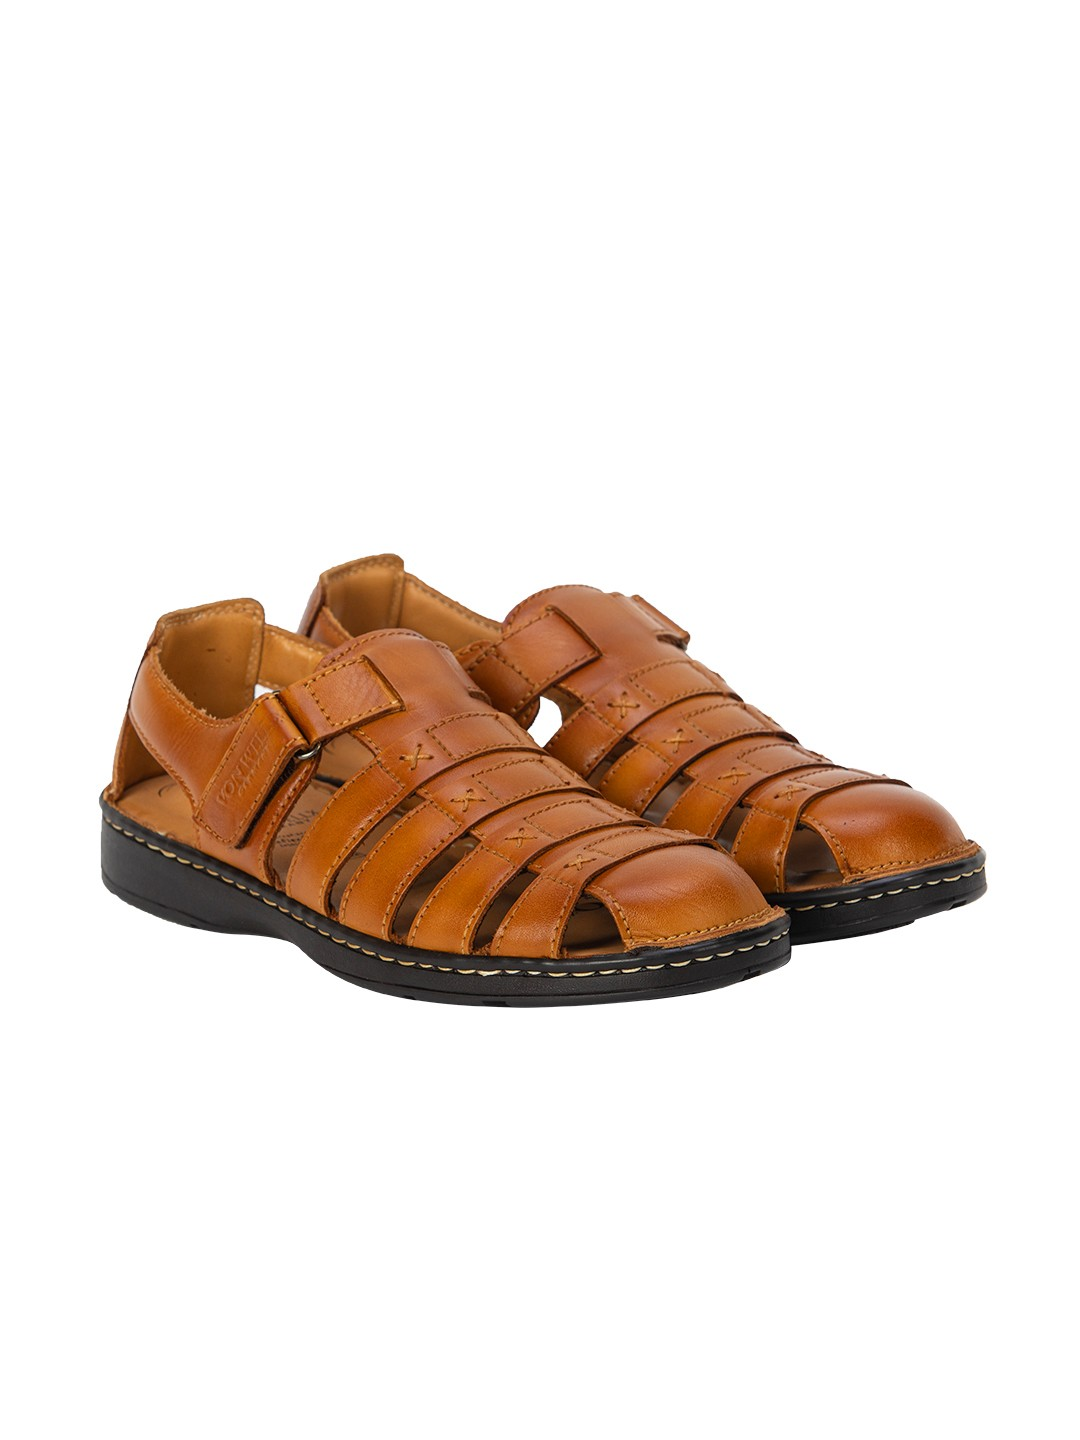 Buy Von Wellx Germany Comfort Melvil Tan Sandals Online in Nashik